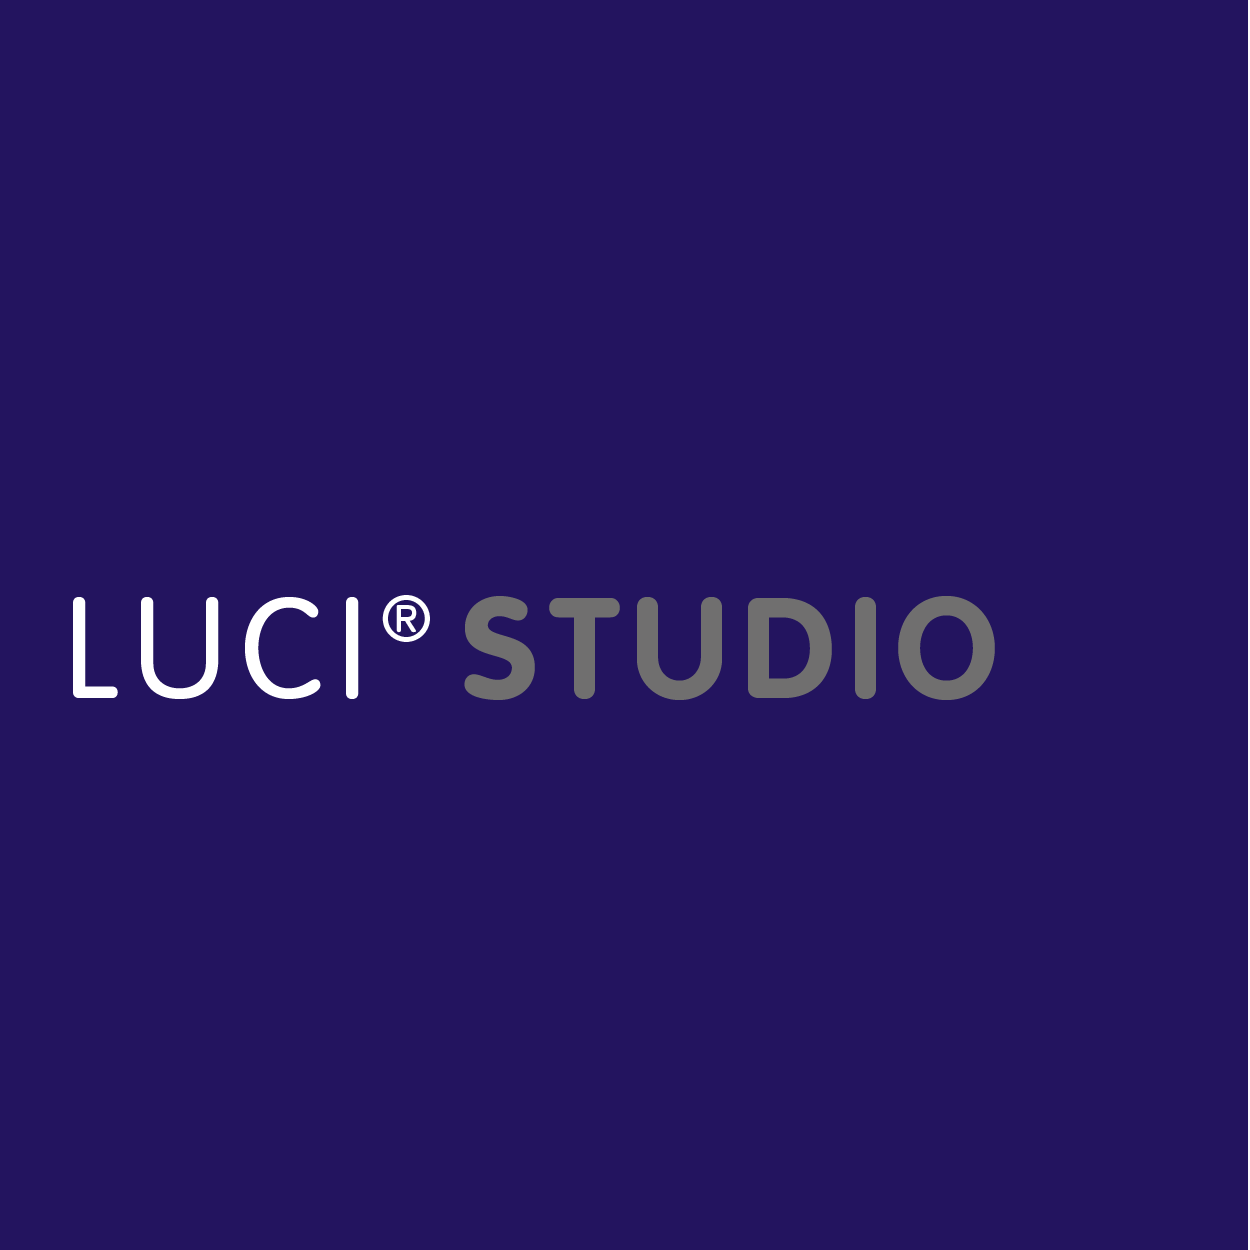 LUCI STUDIO 30 day Licence